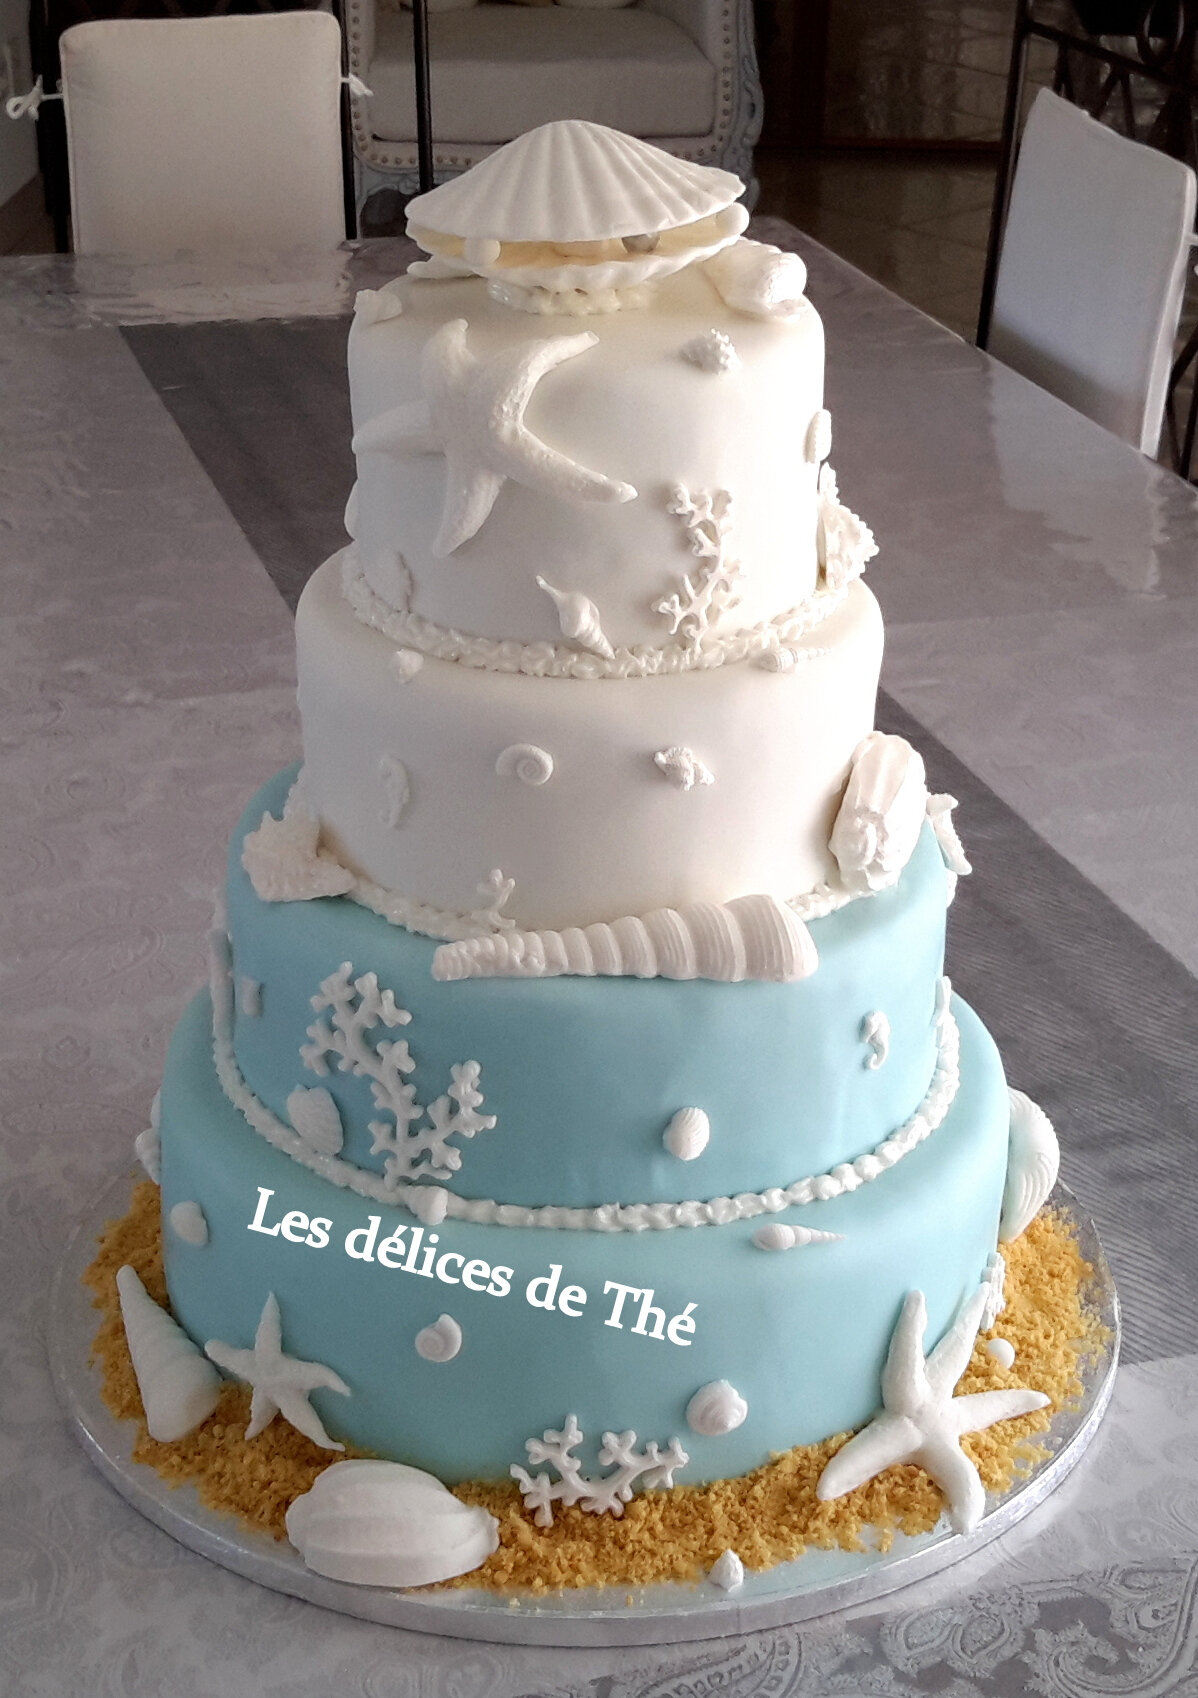 Wedding Cake Theme Coquillages Les Delices De The